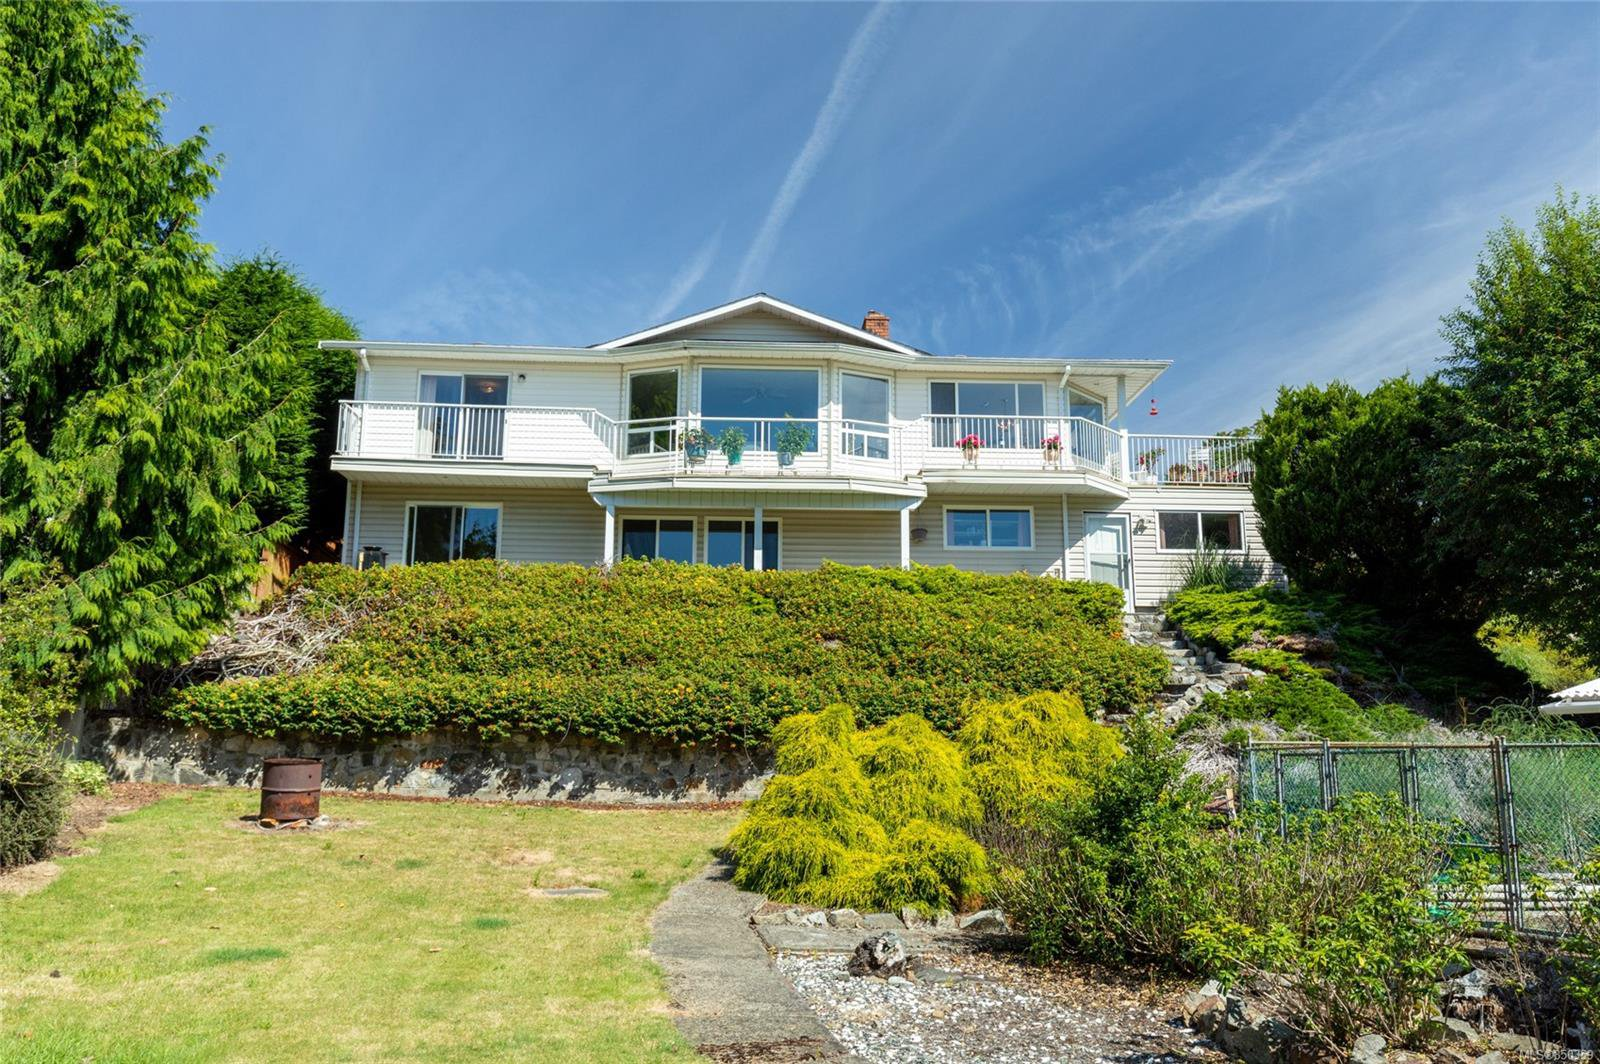 Main Photo: 3506 Bluebill Pl in : PQ Nanoose Single Family Detached for sale (Parksville/Qualicum)  : MLS®# 850359